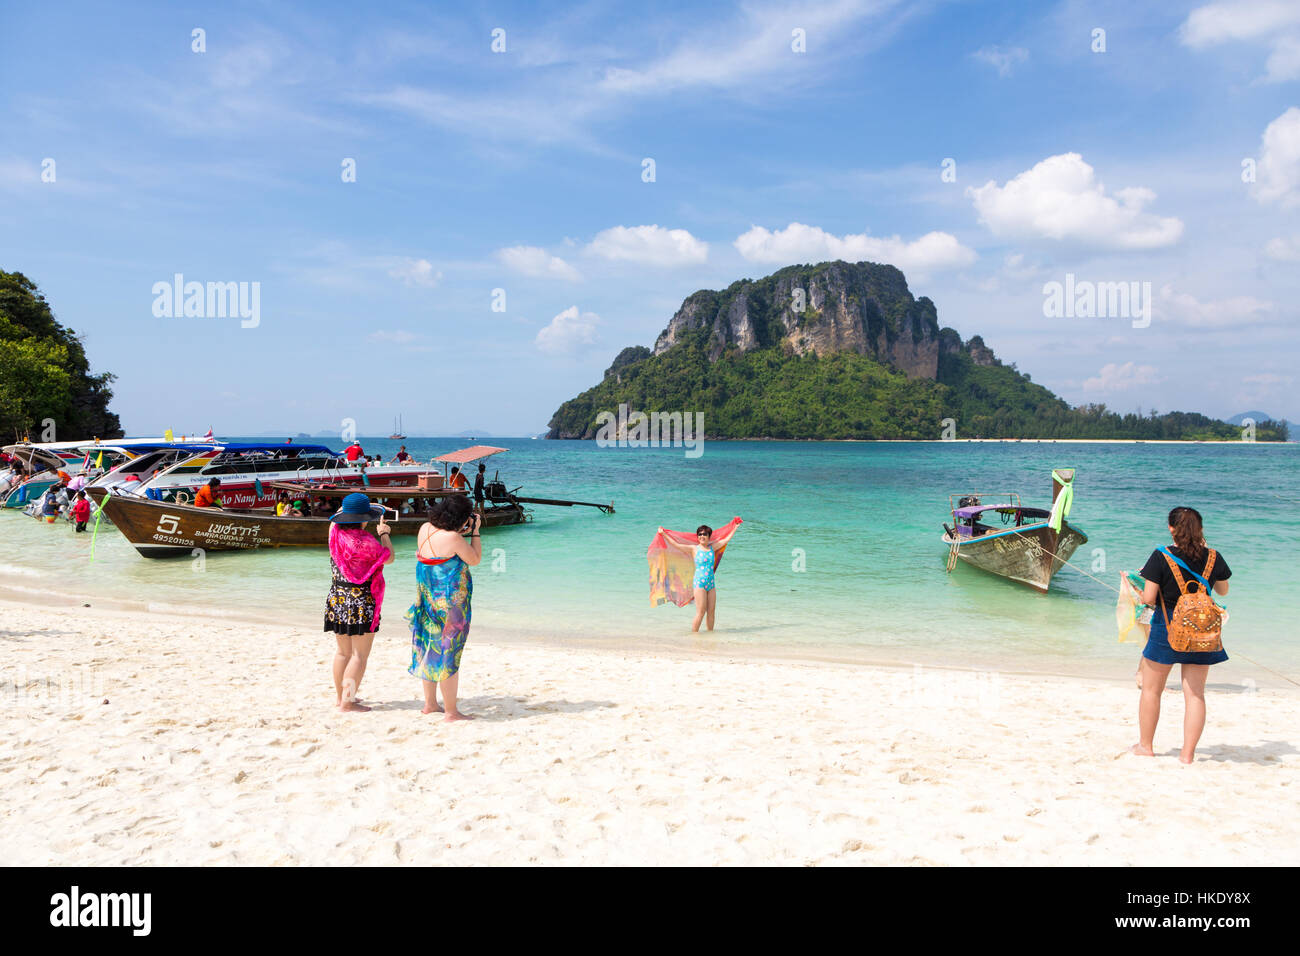 KRABI, THAILAND - DECEMBER 19 2015: Two Chinese tourists take a photo of their friend in front of an island near - Stock Image